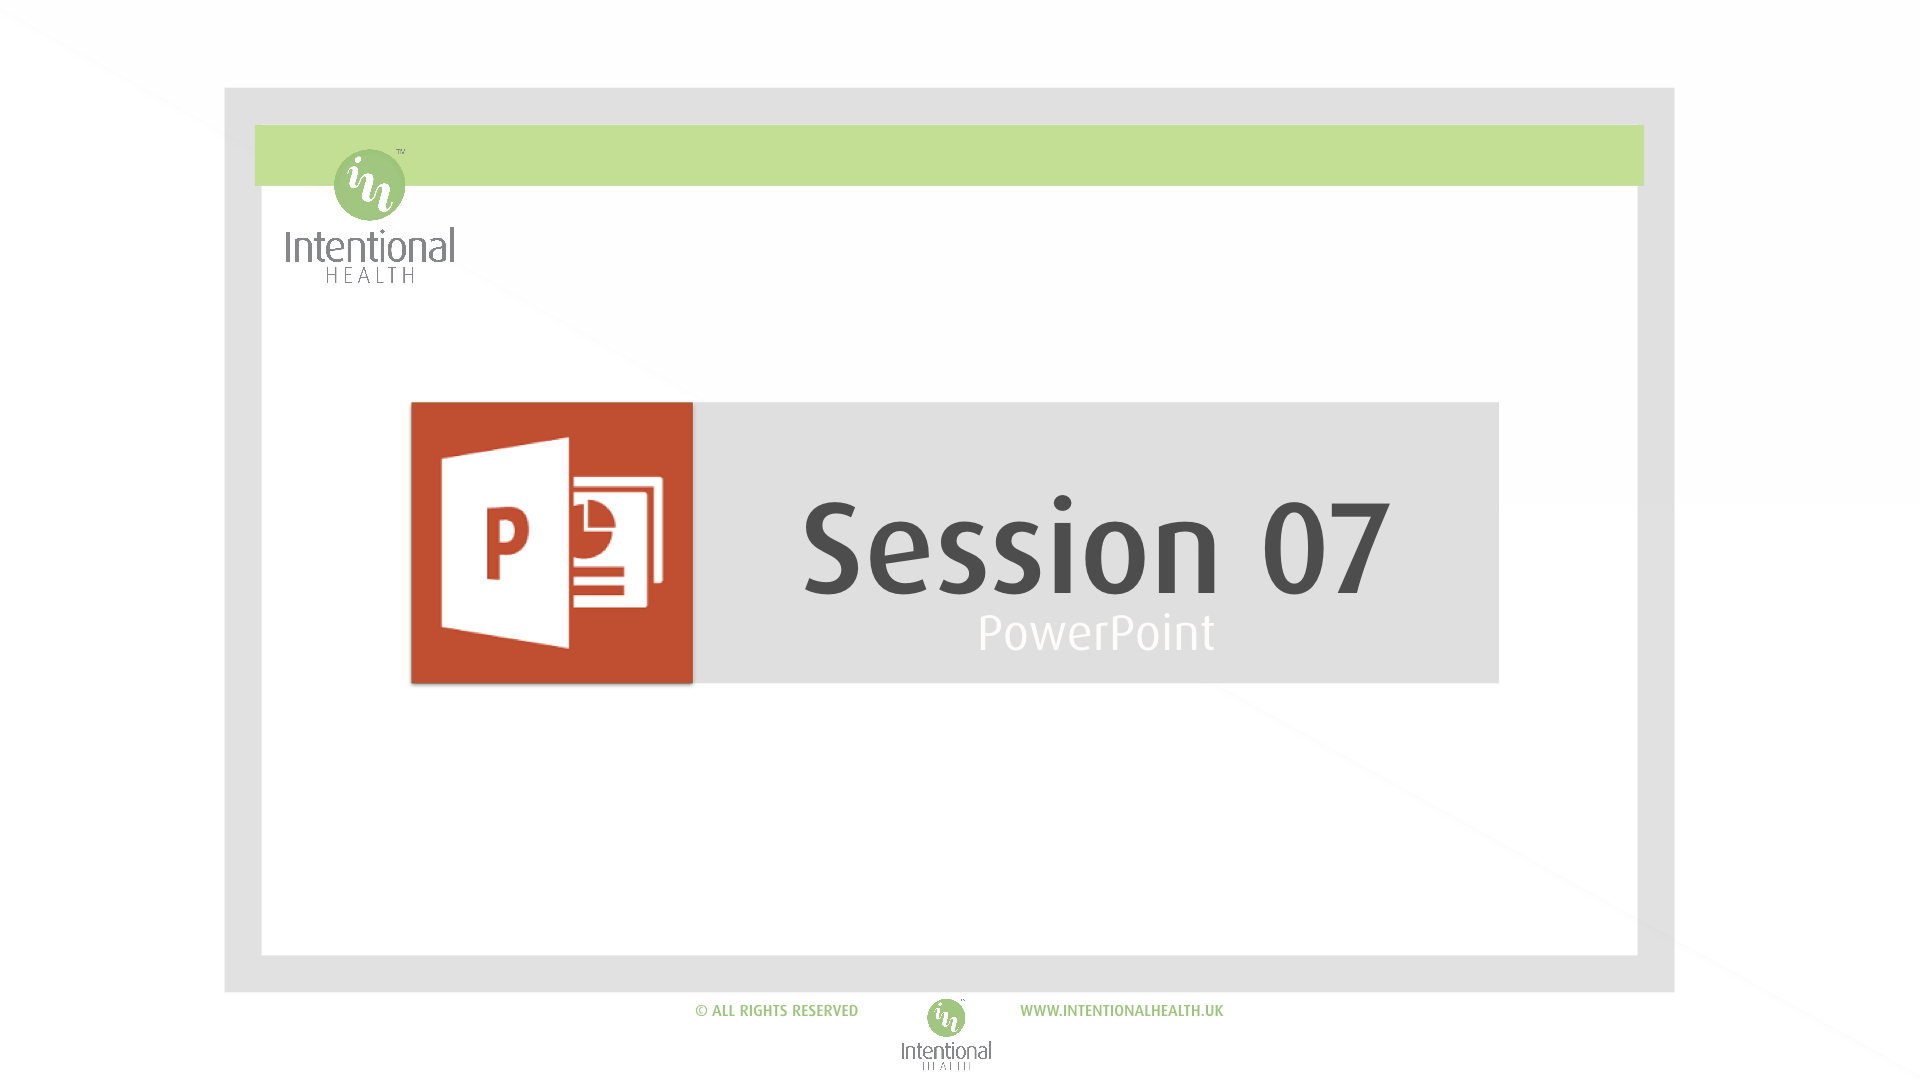 Session 07 Powerpoint